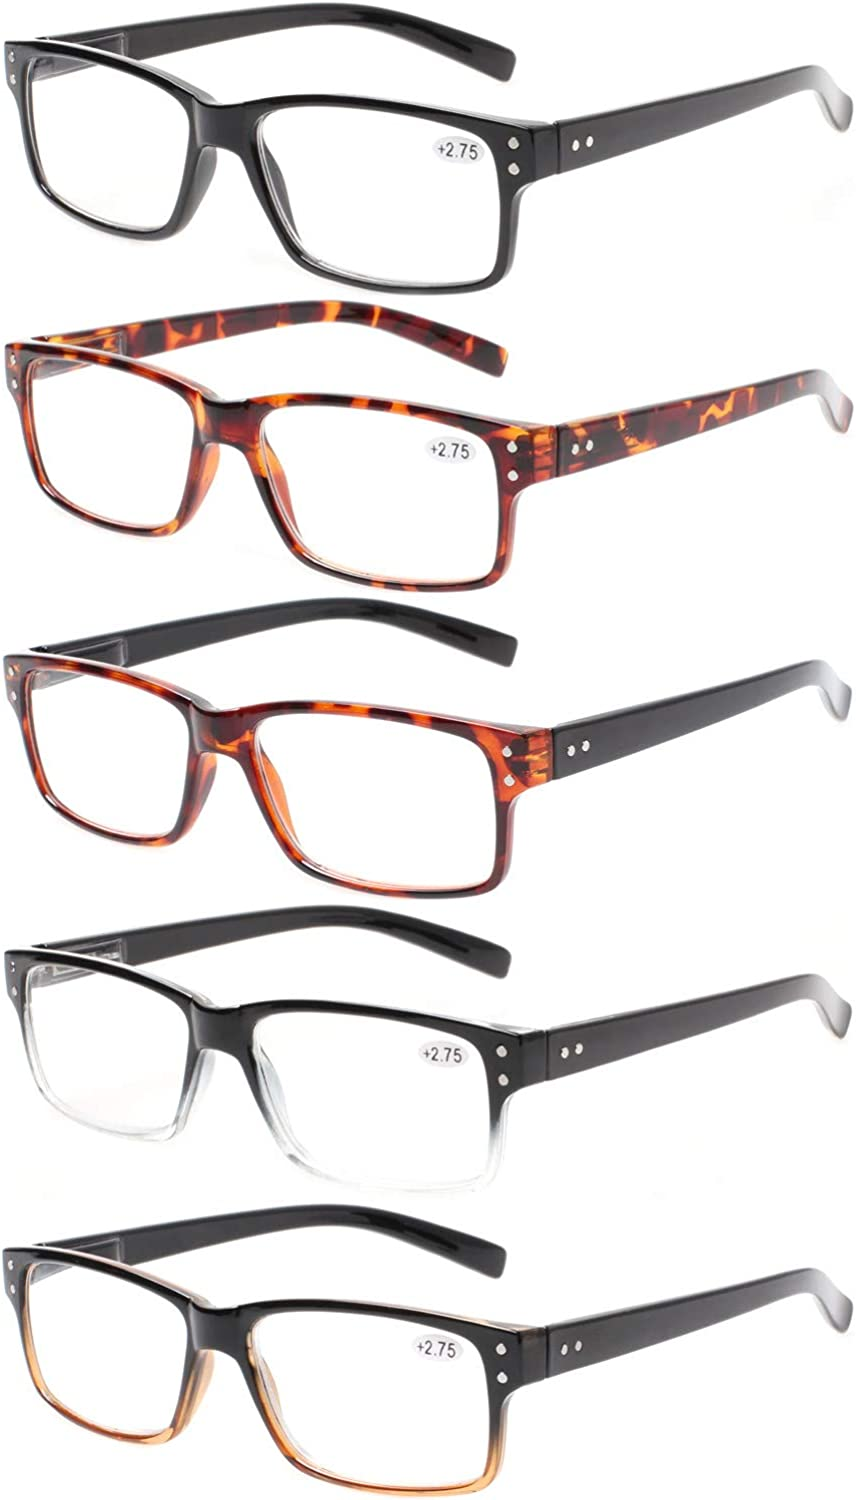 Reading Glasses 5 Pairs Quality Readers Spring Hinge Glasses for Reading for Men and Women